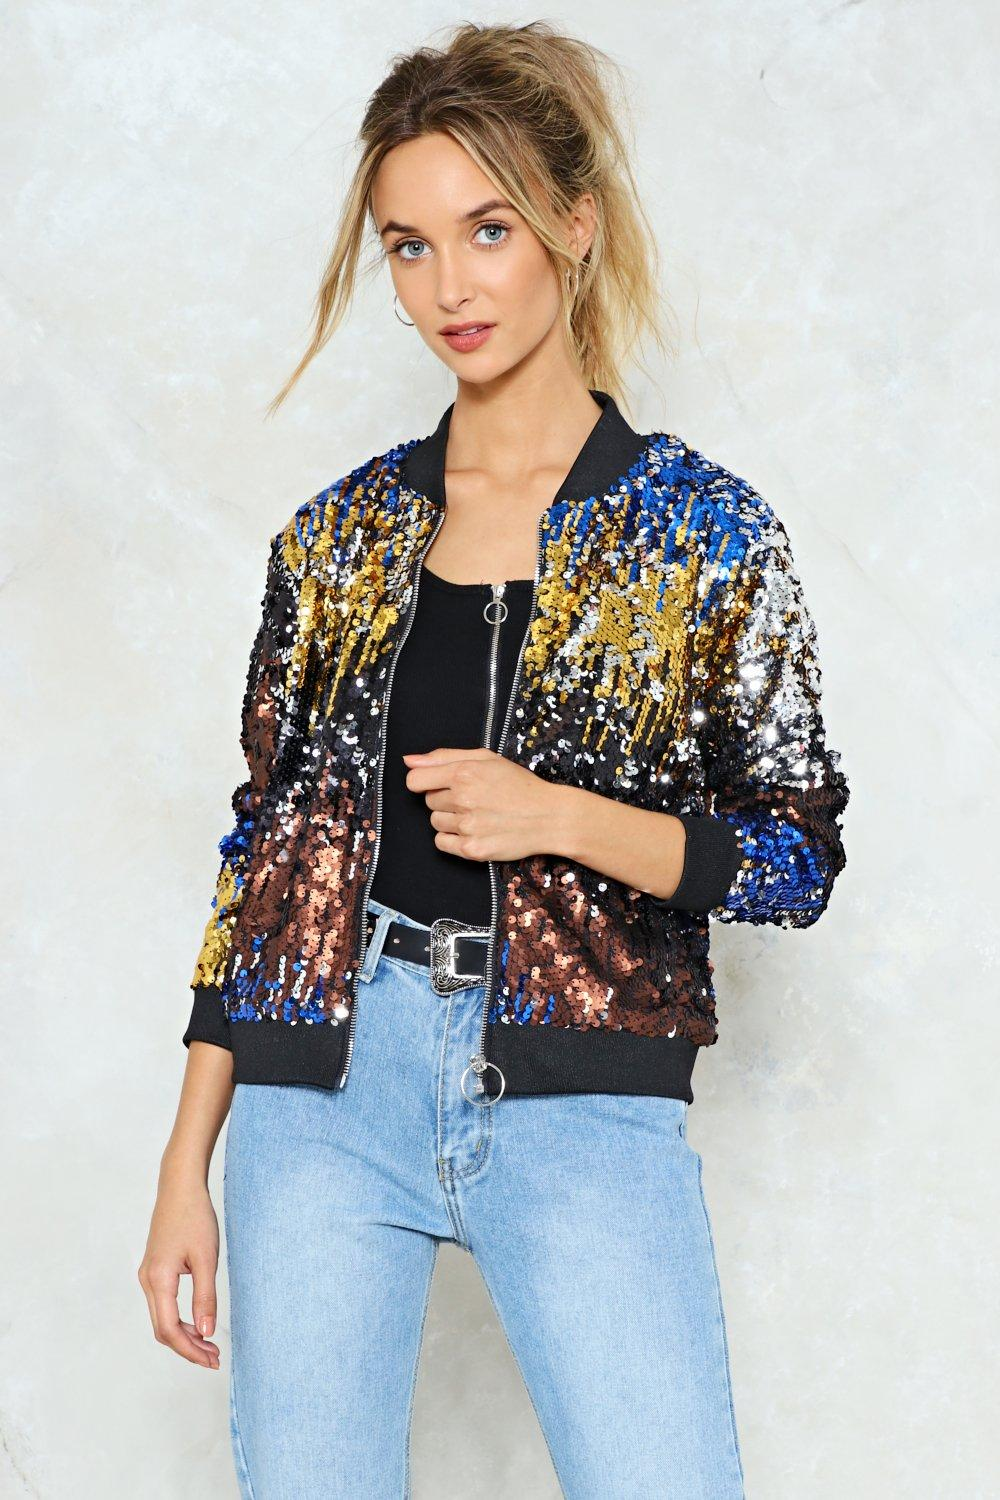 b0fb6fc67 Talk of the Town Sequin Bomber Jacket | Shop Clothes at Nasty Gal!